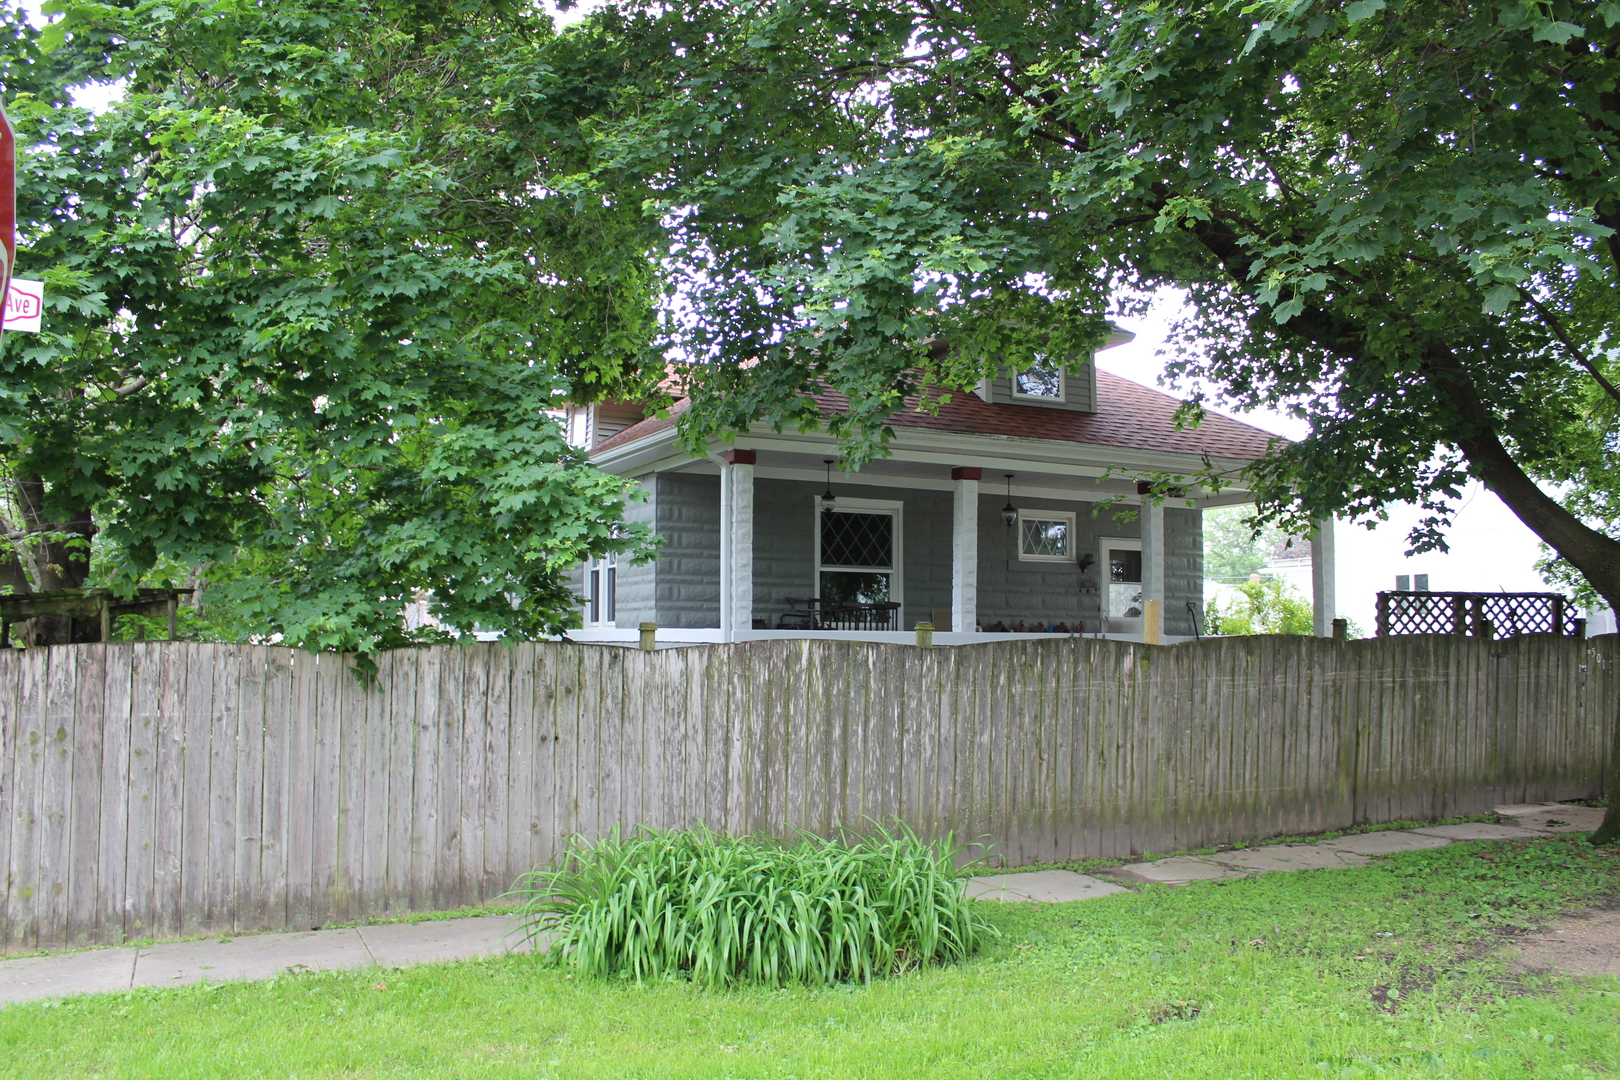 501 South 2nd, Forreston, Illinois, 61030